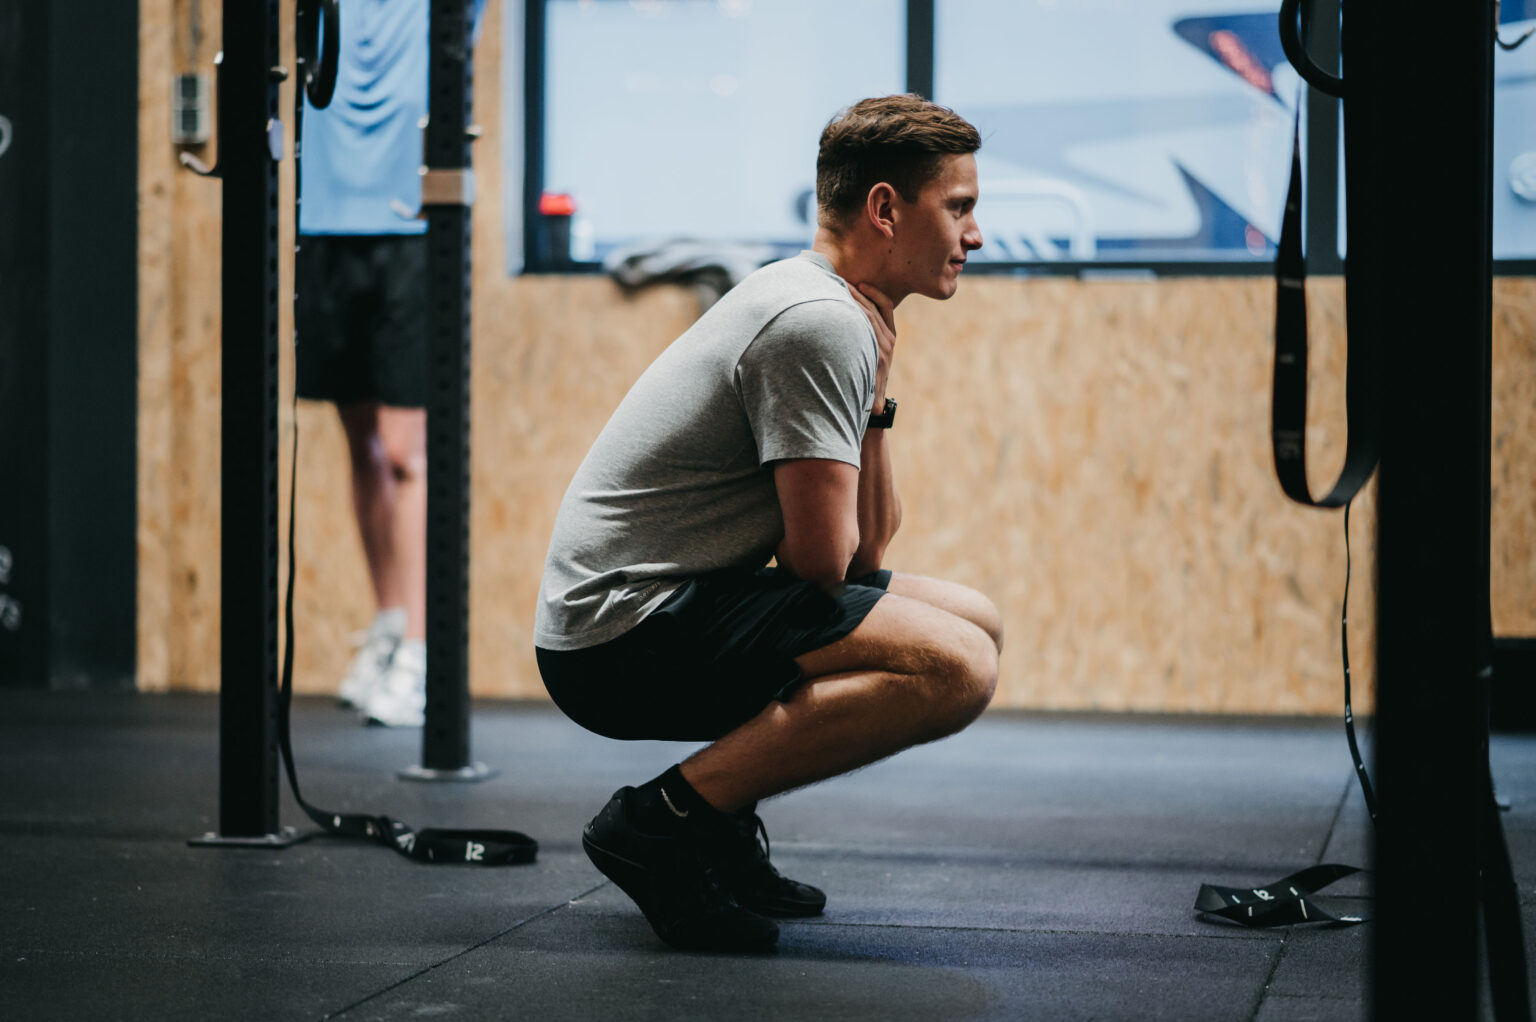 personal Training St-Oedenrode